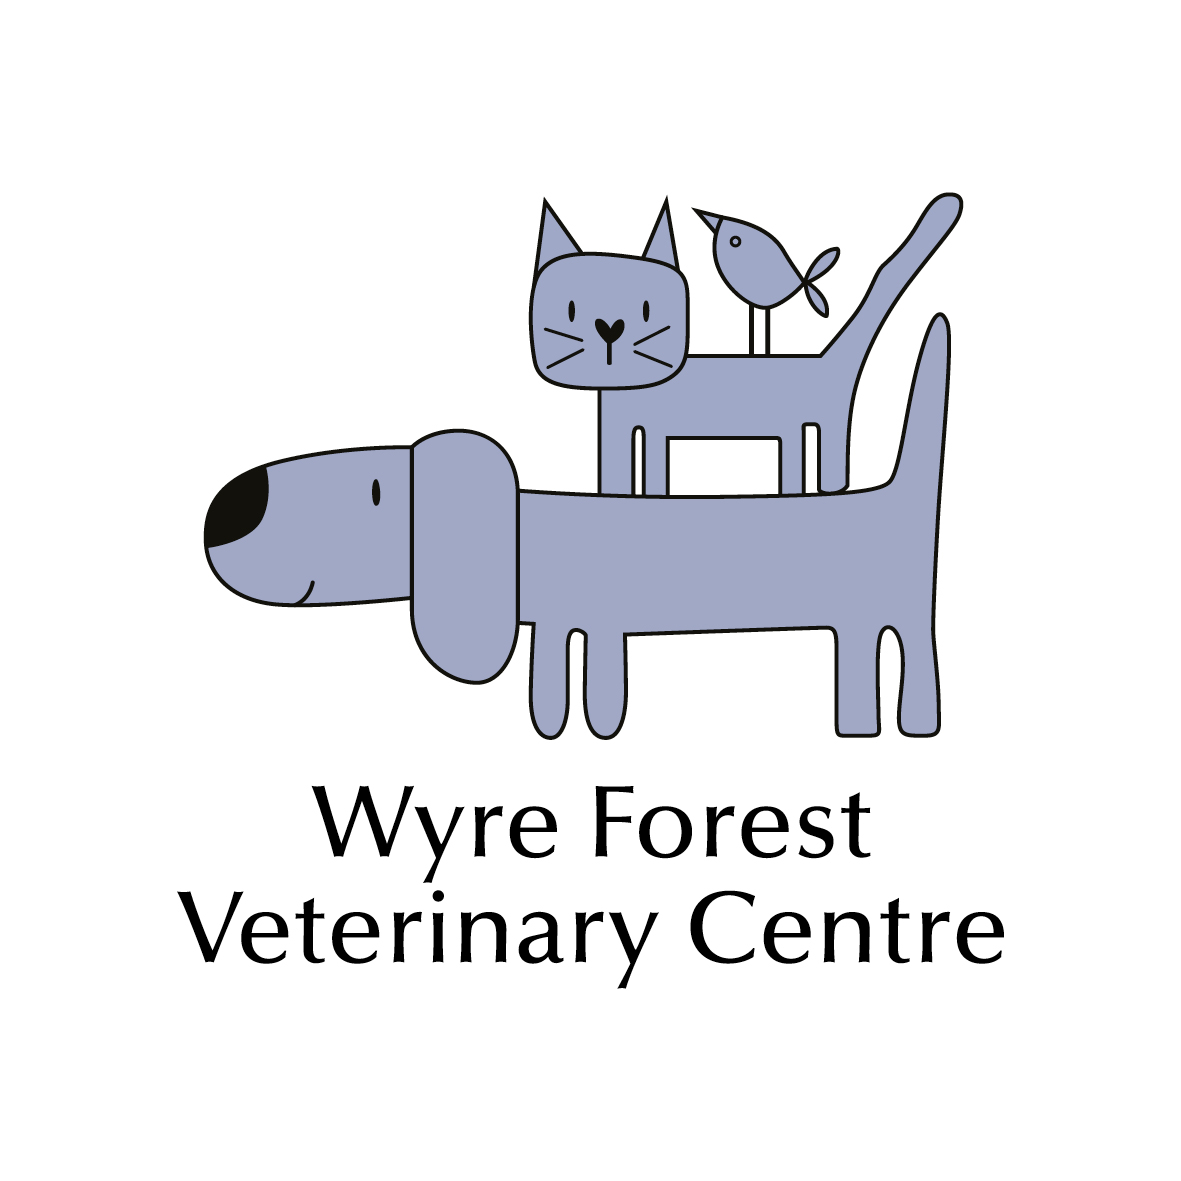 Wyre Forest Veterinary Centre - Kidderminster, Worcestershire DY11 5DA - 01562 740517 | ShowMeLocal.com